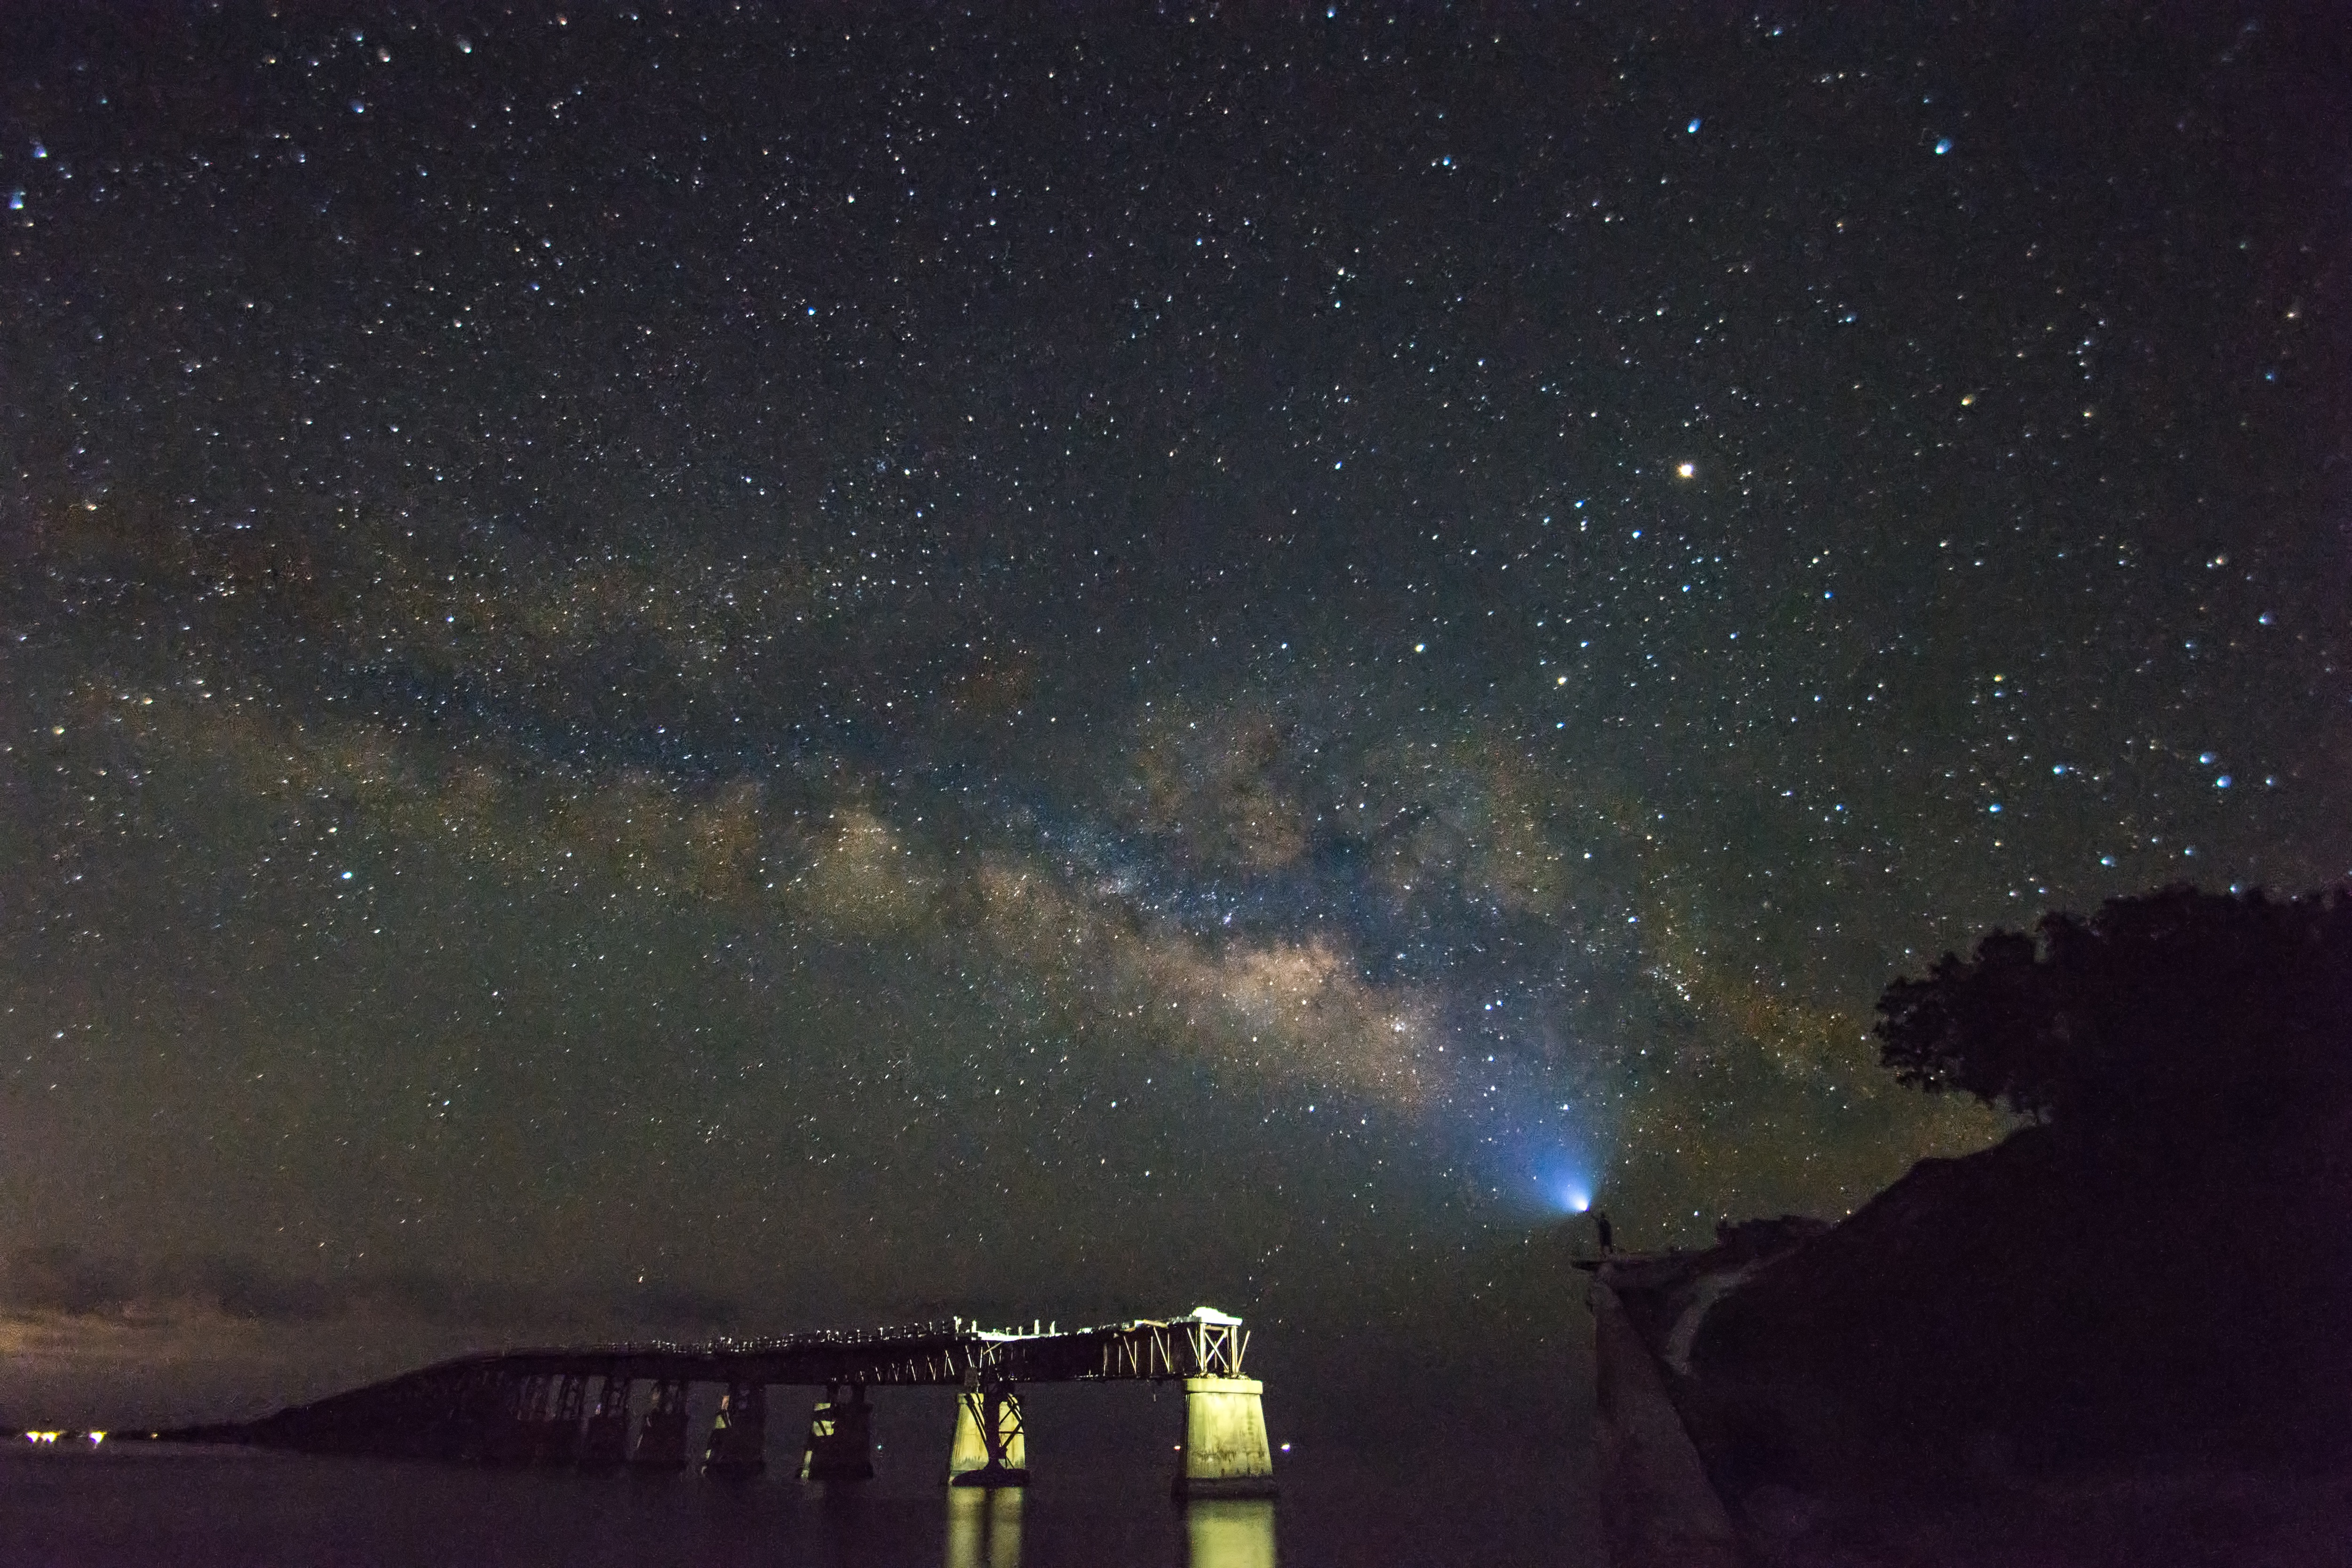 Stargazing at Bahia Honda